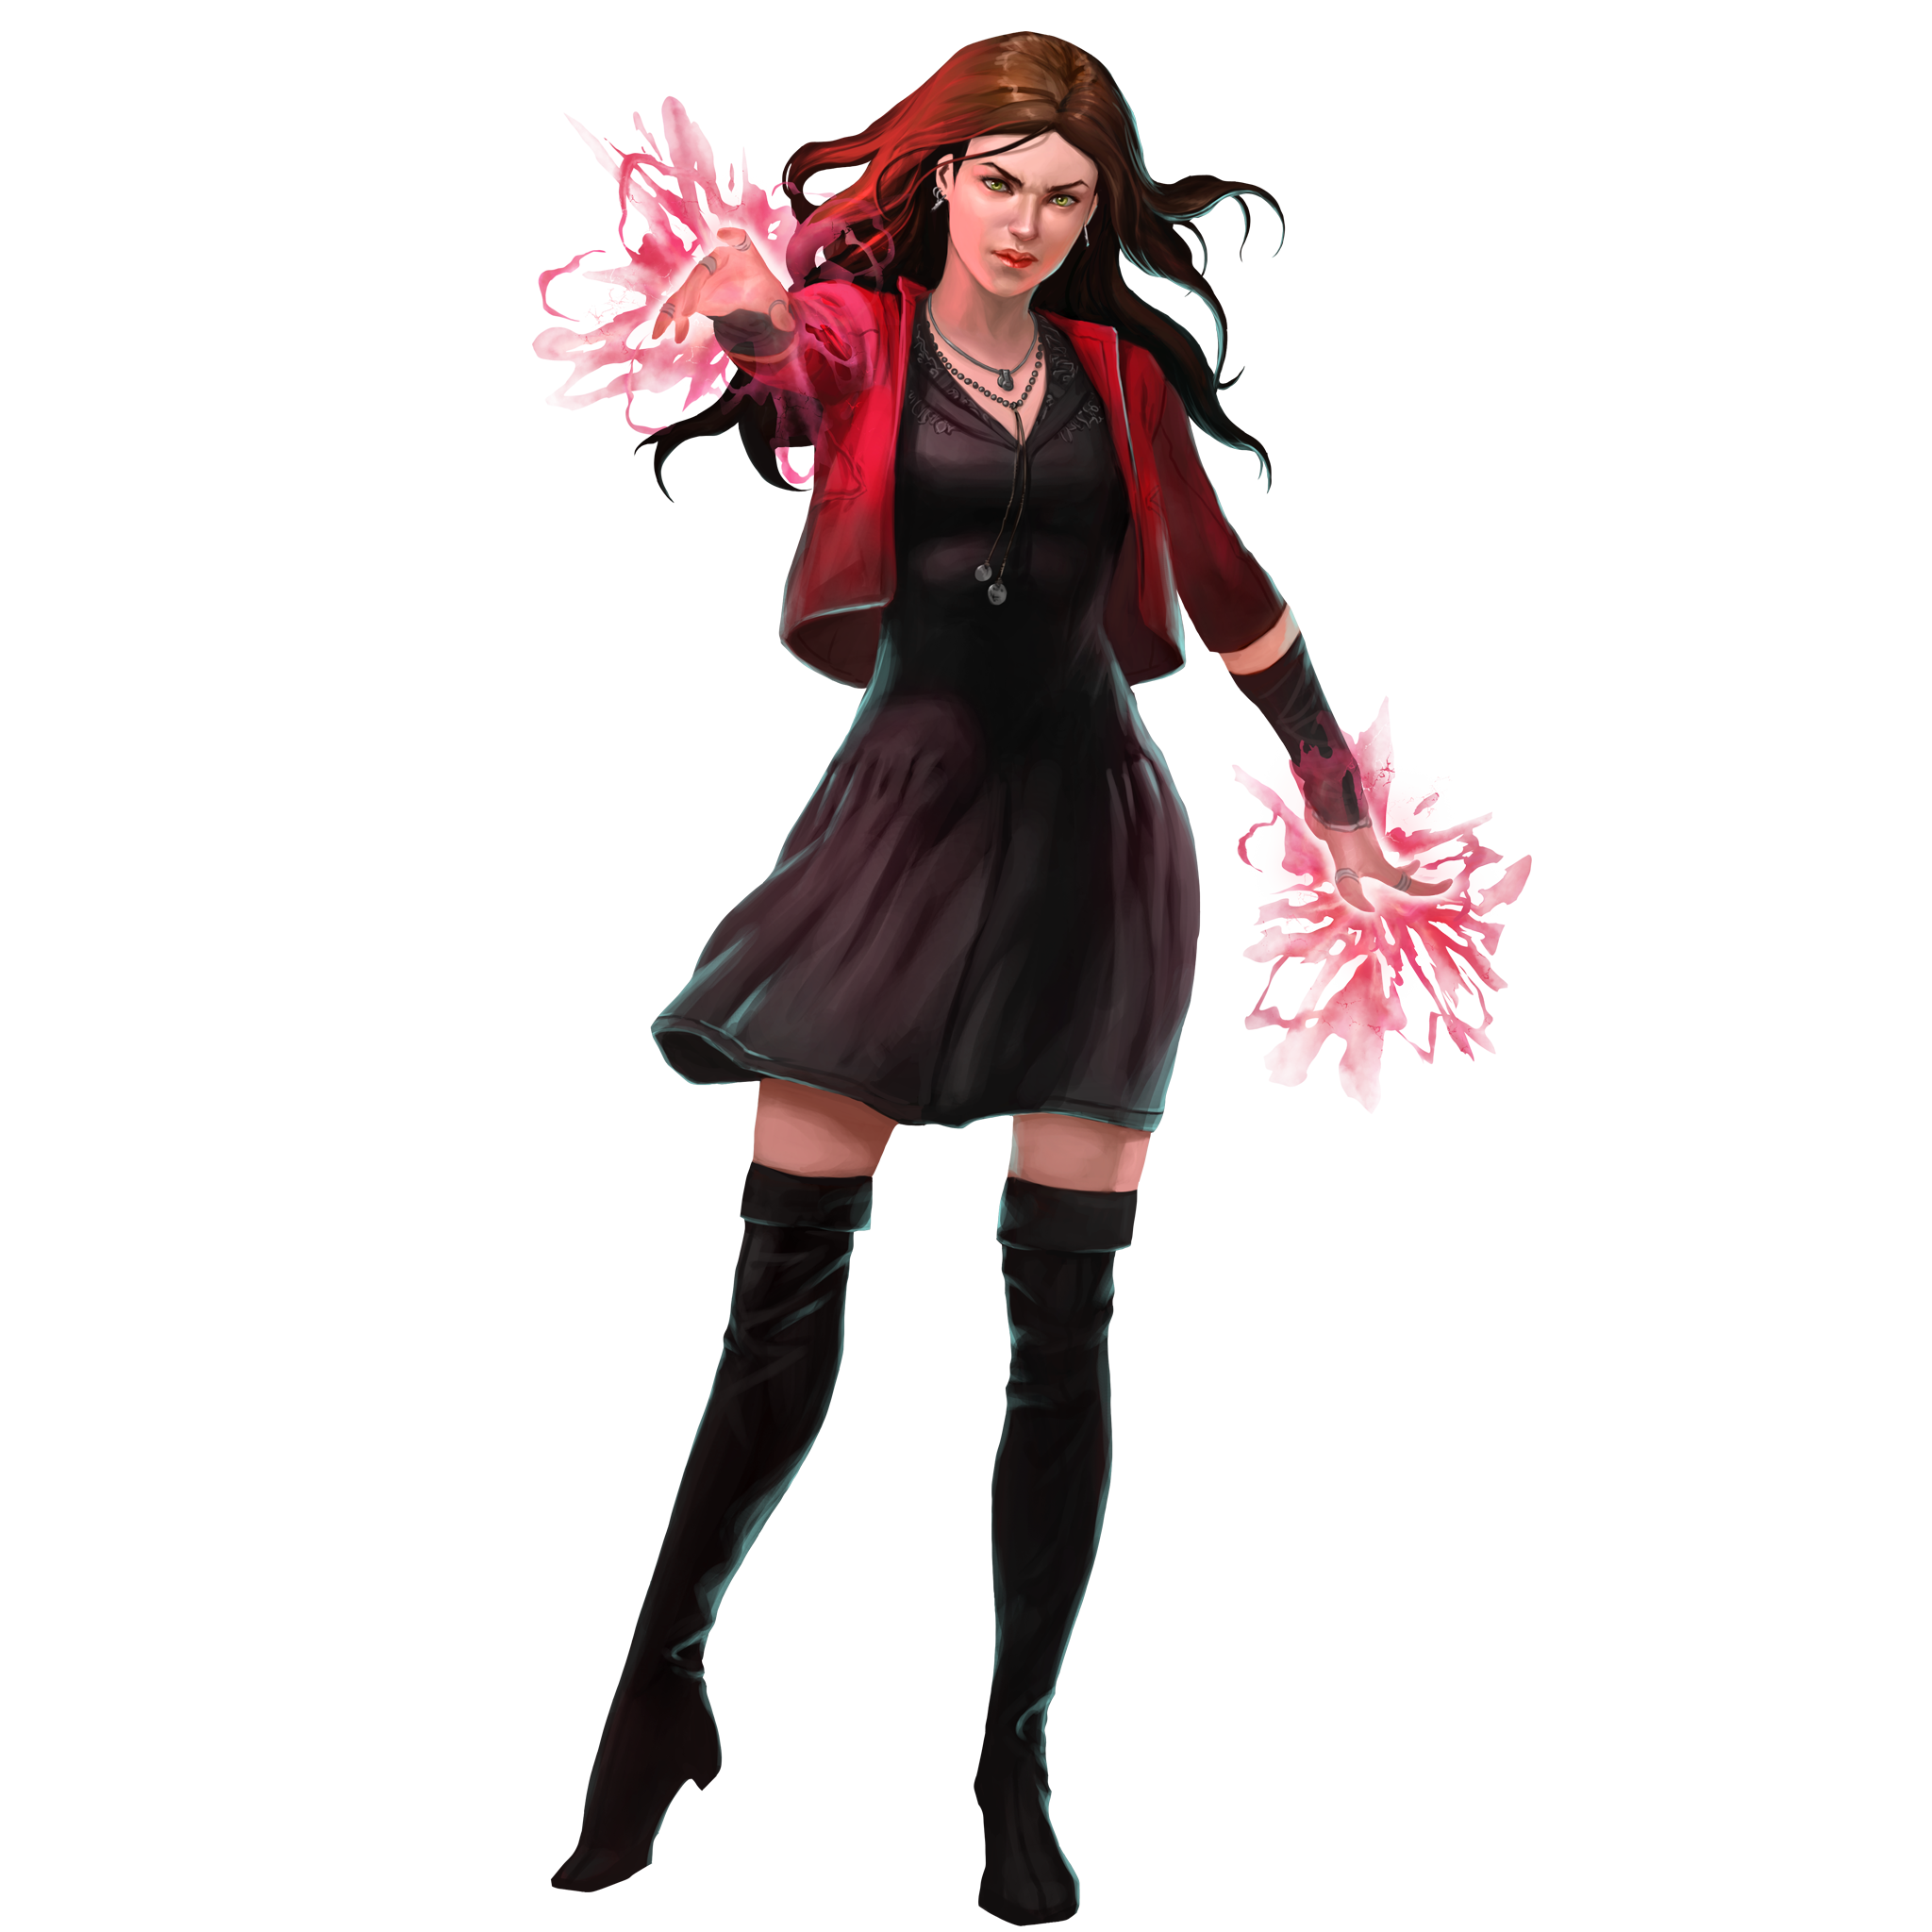 Download Scarlet Witch Png Clipart HQ PNG Image | FreePNGImg